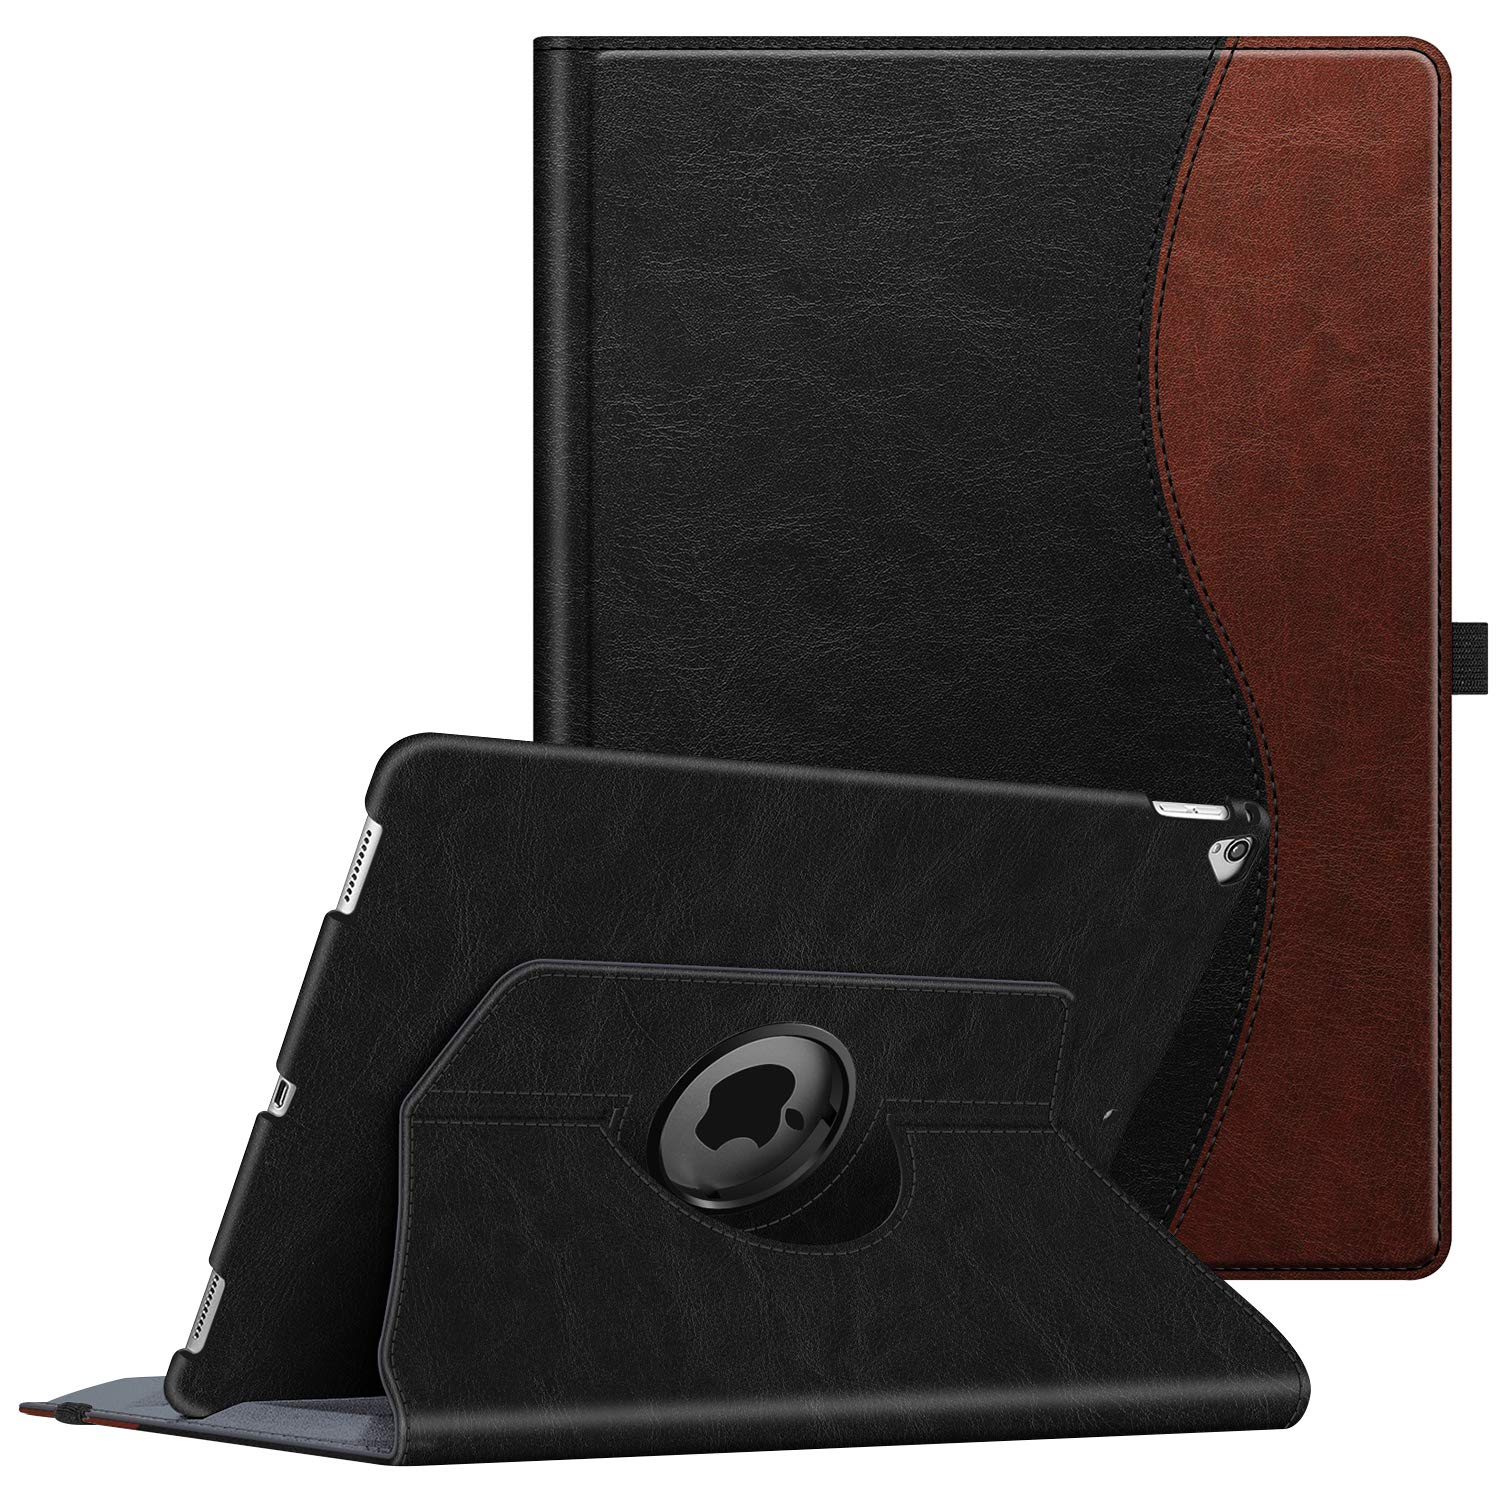 Fintie Rotating Case for iPad Pro 12.9 (2nd Gen) 2017 / iPad Pro 12.9 (1st Gen) 2015-360 Degree Rotating Stand Case with Smart Protective Cover Auto Sleep/Wake, Dual Color